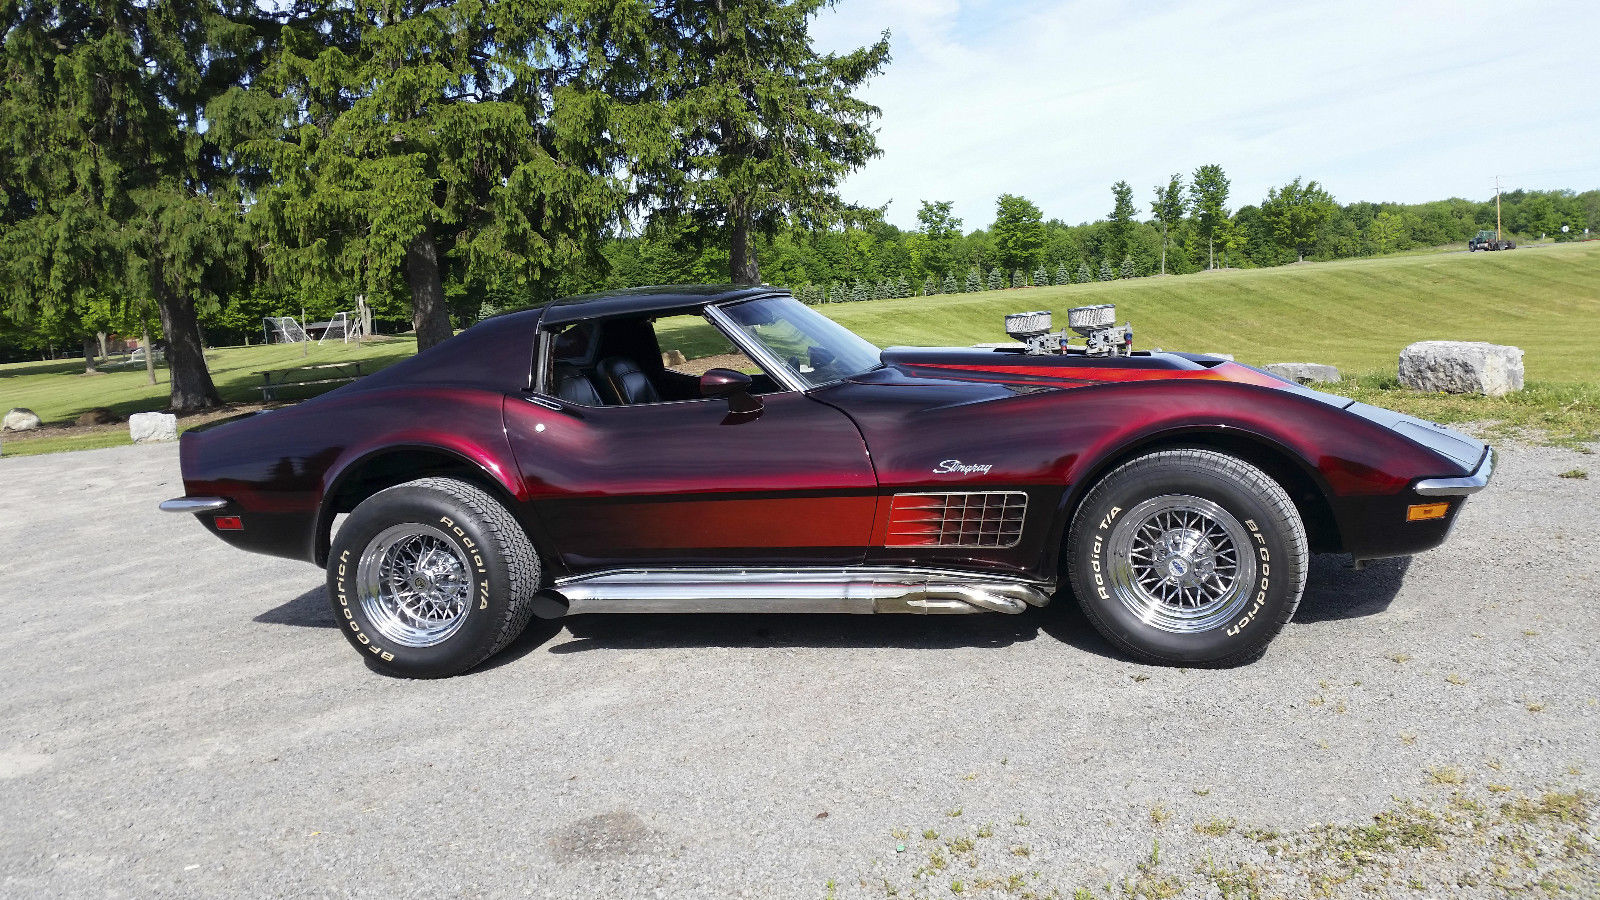 Ford Racing Apparel >> BangShift.com This 1970 Corvette Is The Right Kind Of Retro! Etched Glass, Killer Paint, And A ...